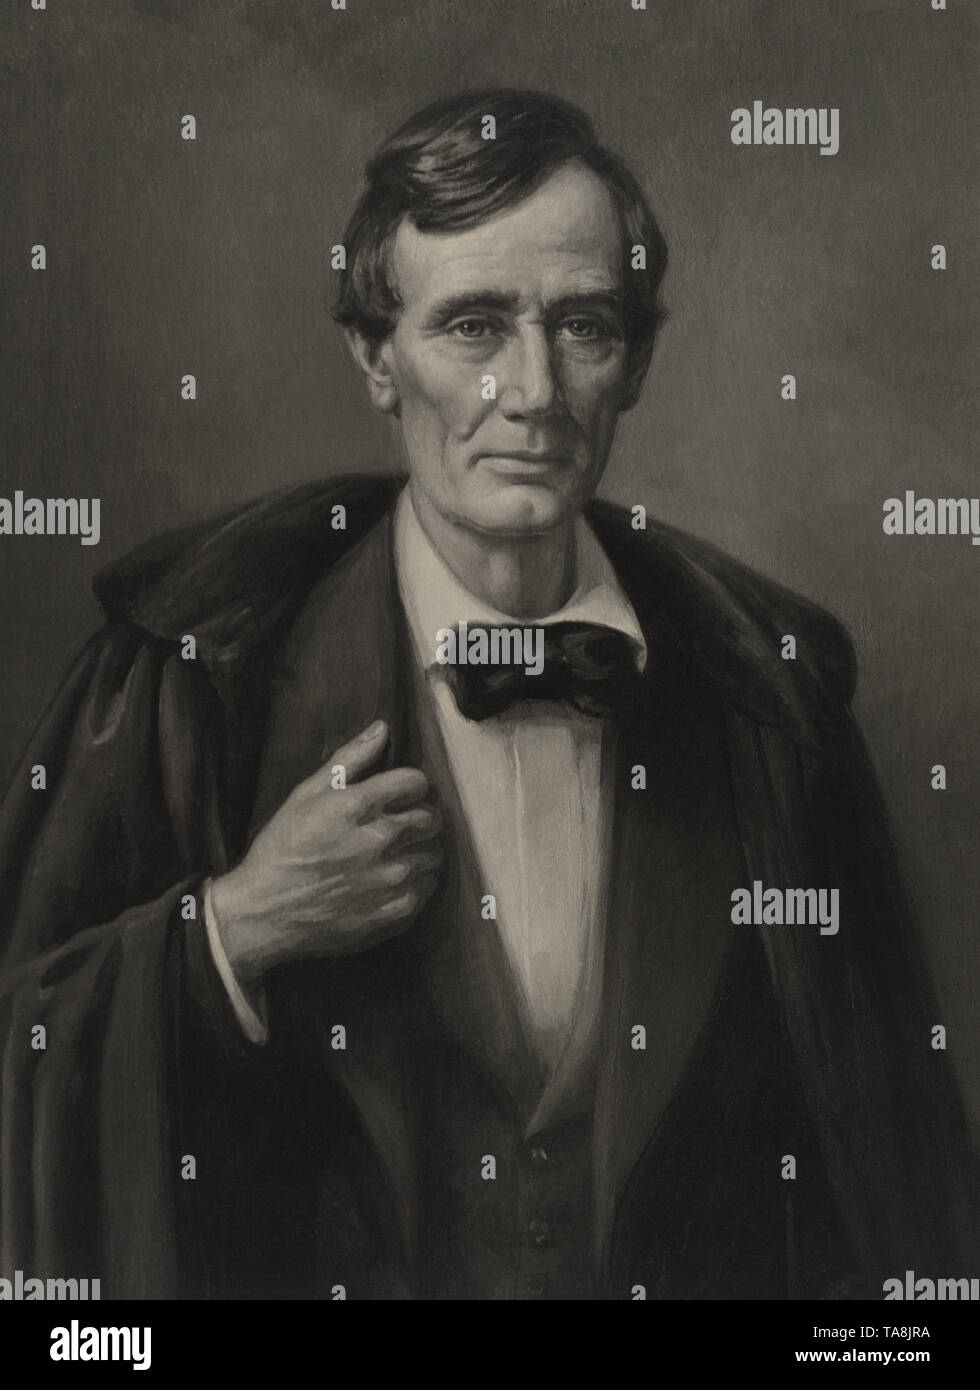 Abraham Lincoln, Reproduction of a 1932 Oil Painting by Charles Sneed Williams - Stock Image